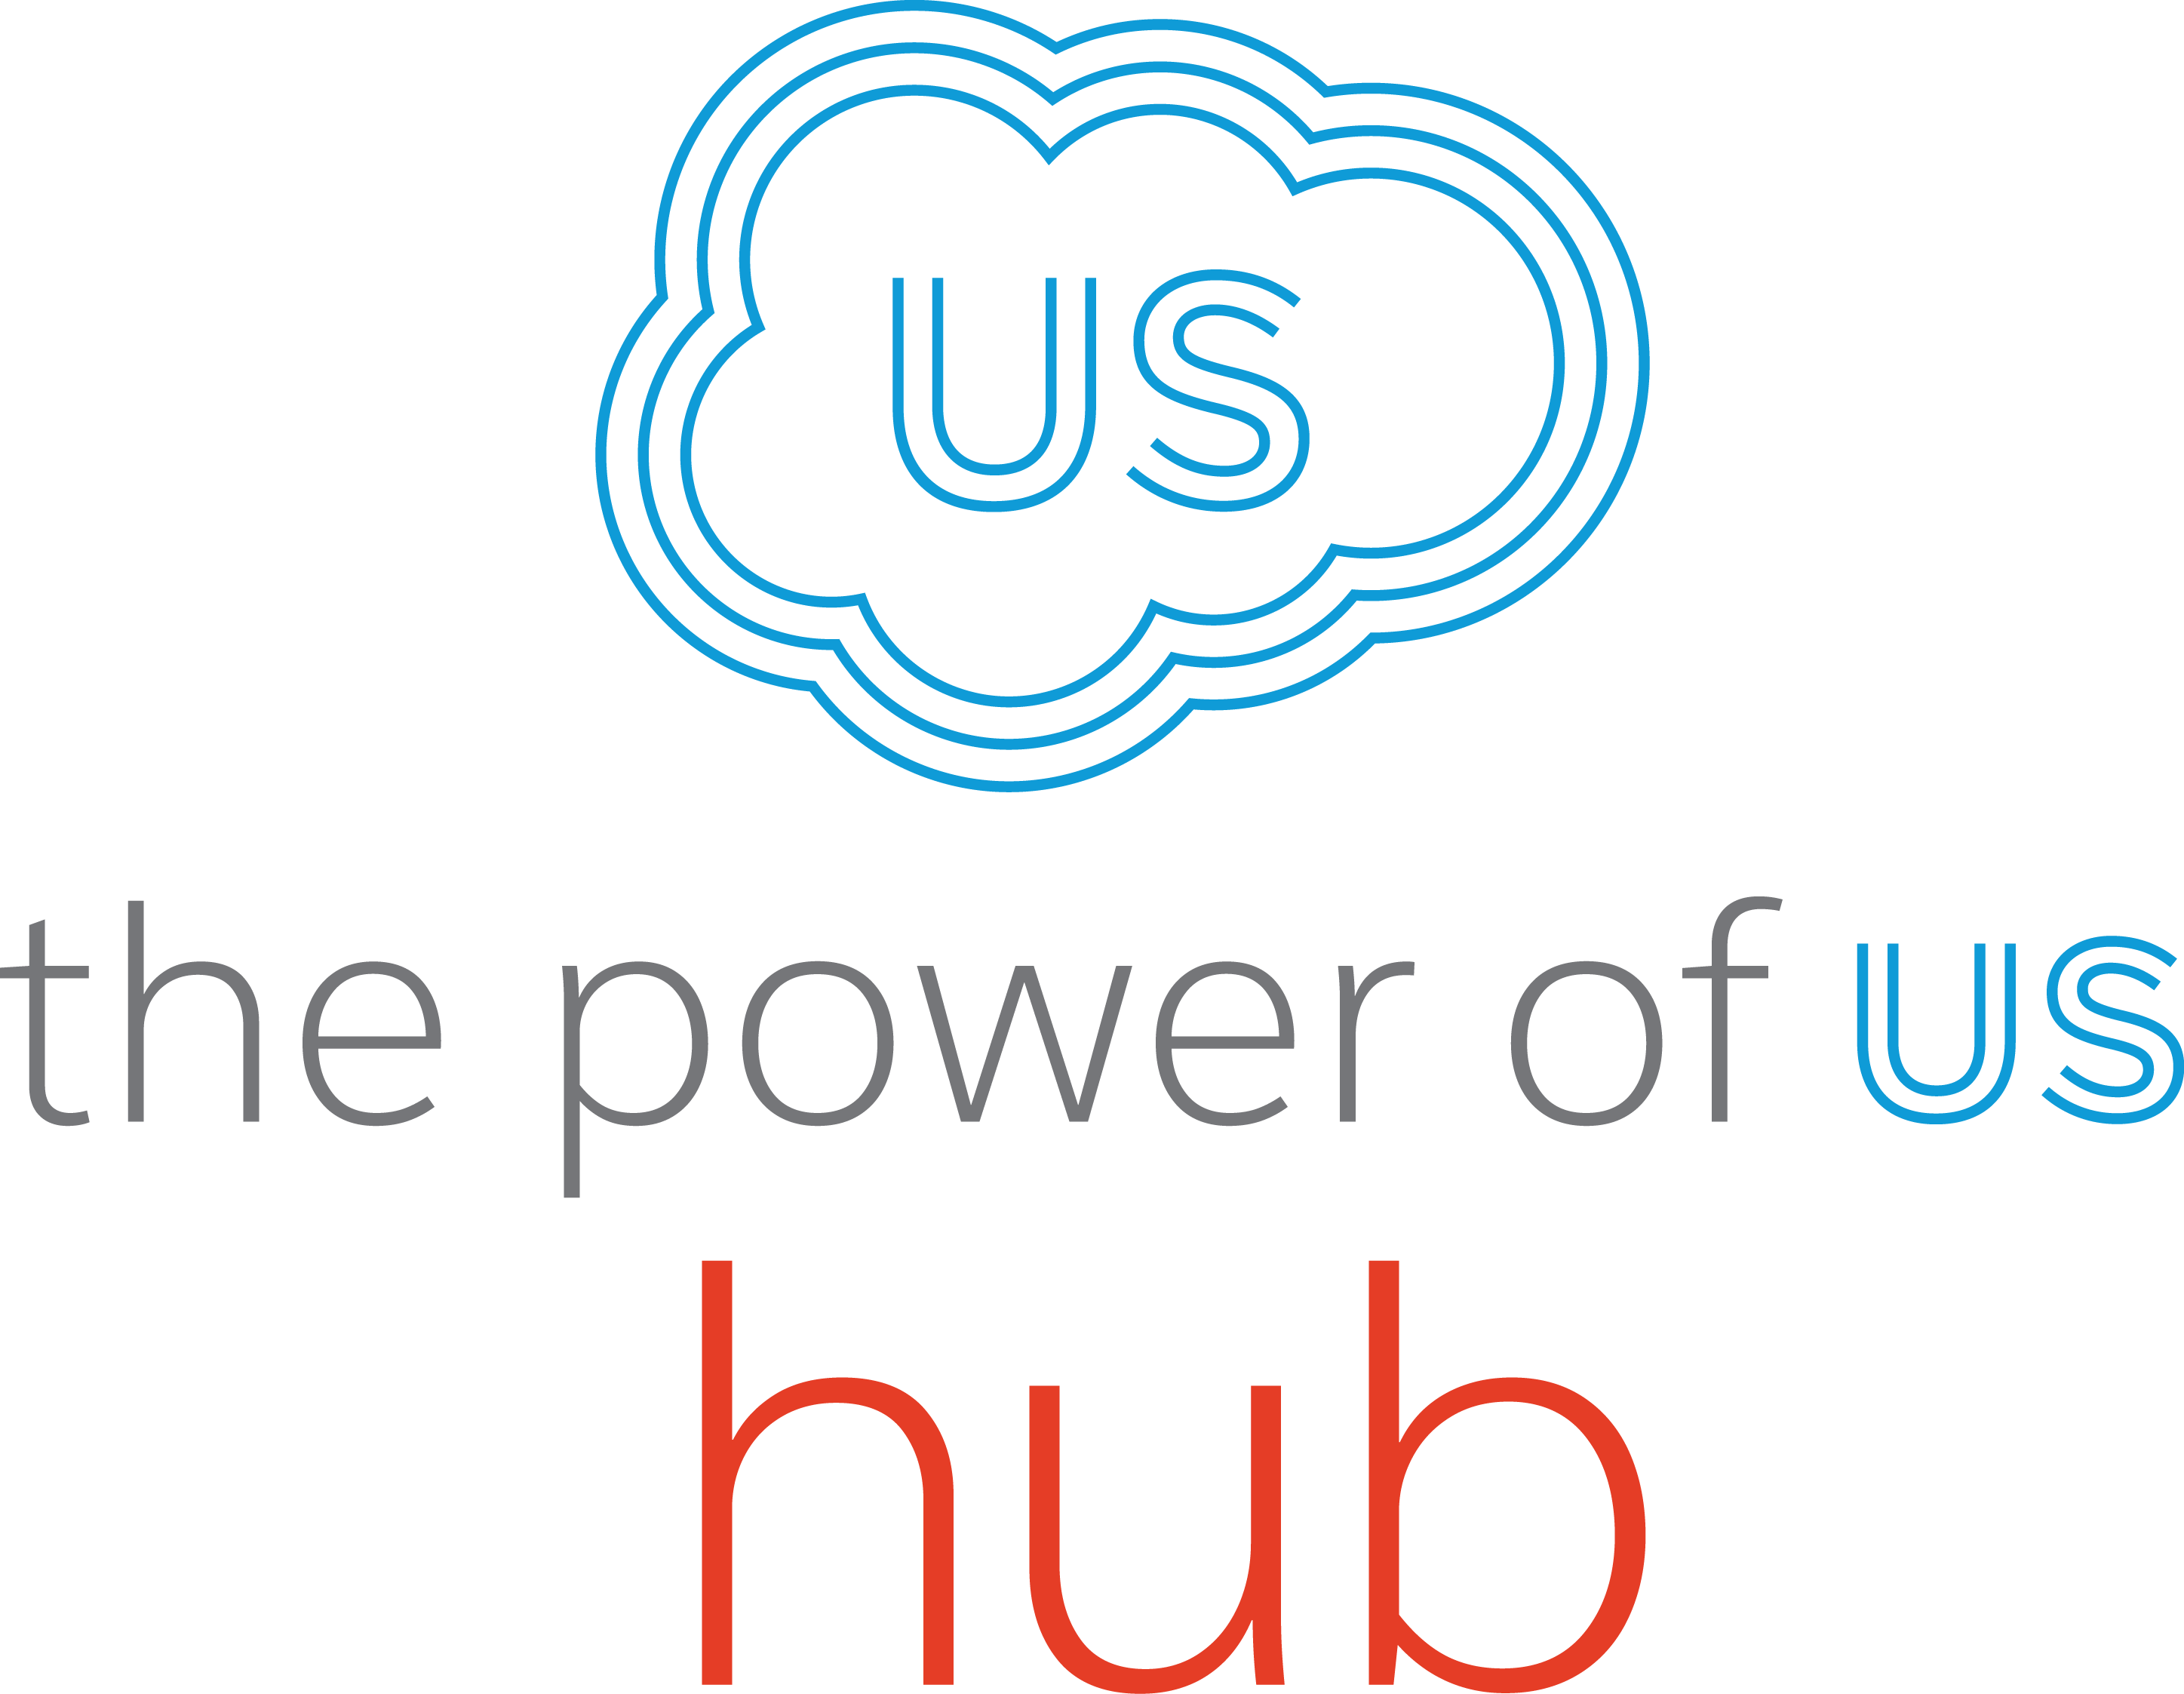 Salesforce training and certification options for salesforce salesforce training and certification options for salesforce customers power of us hub 1betcityfo Images